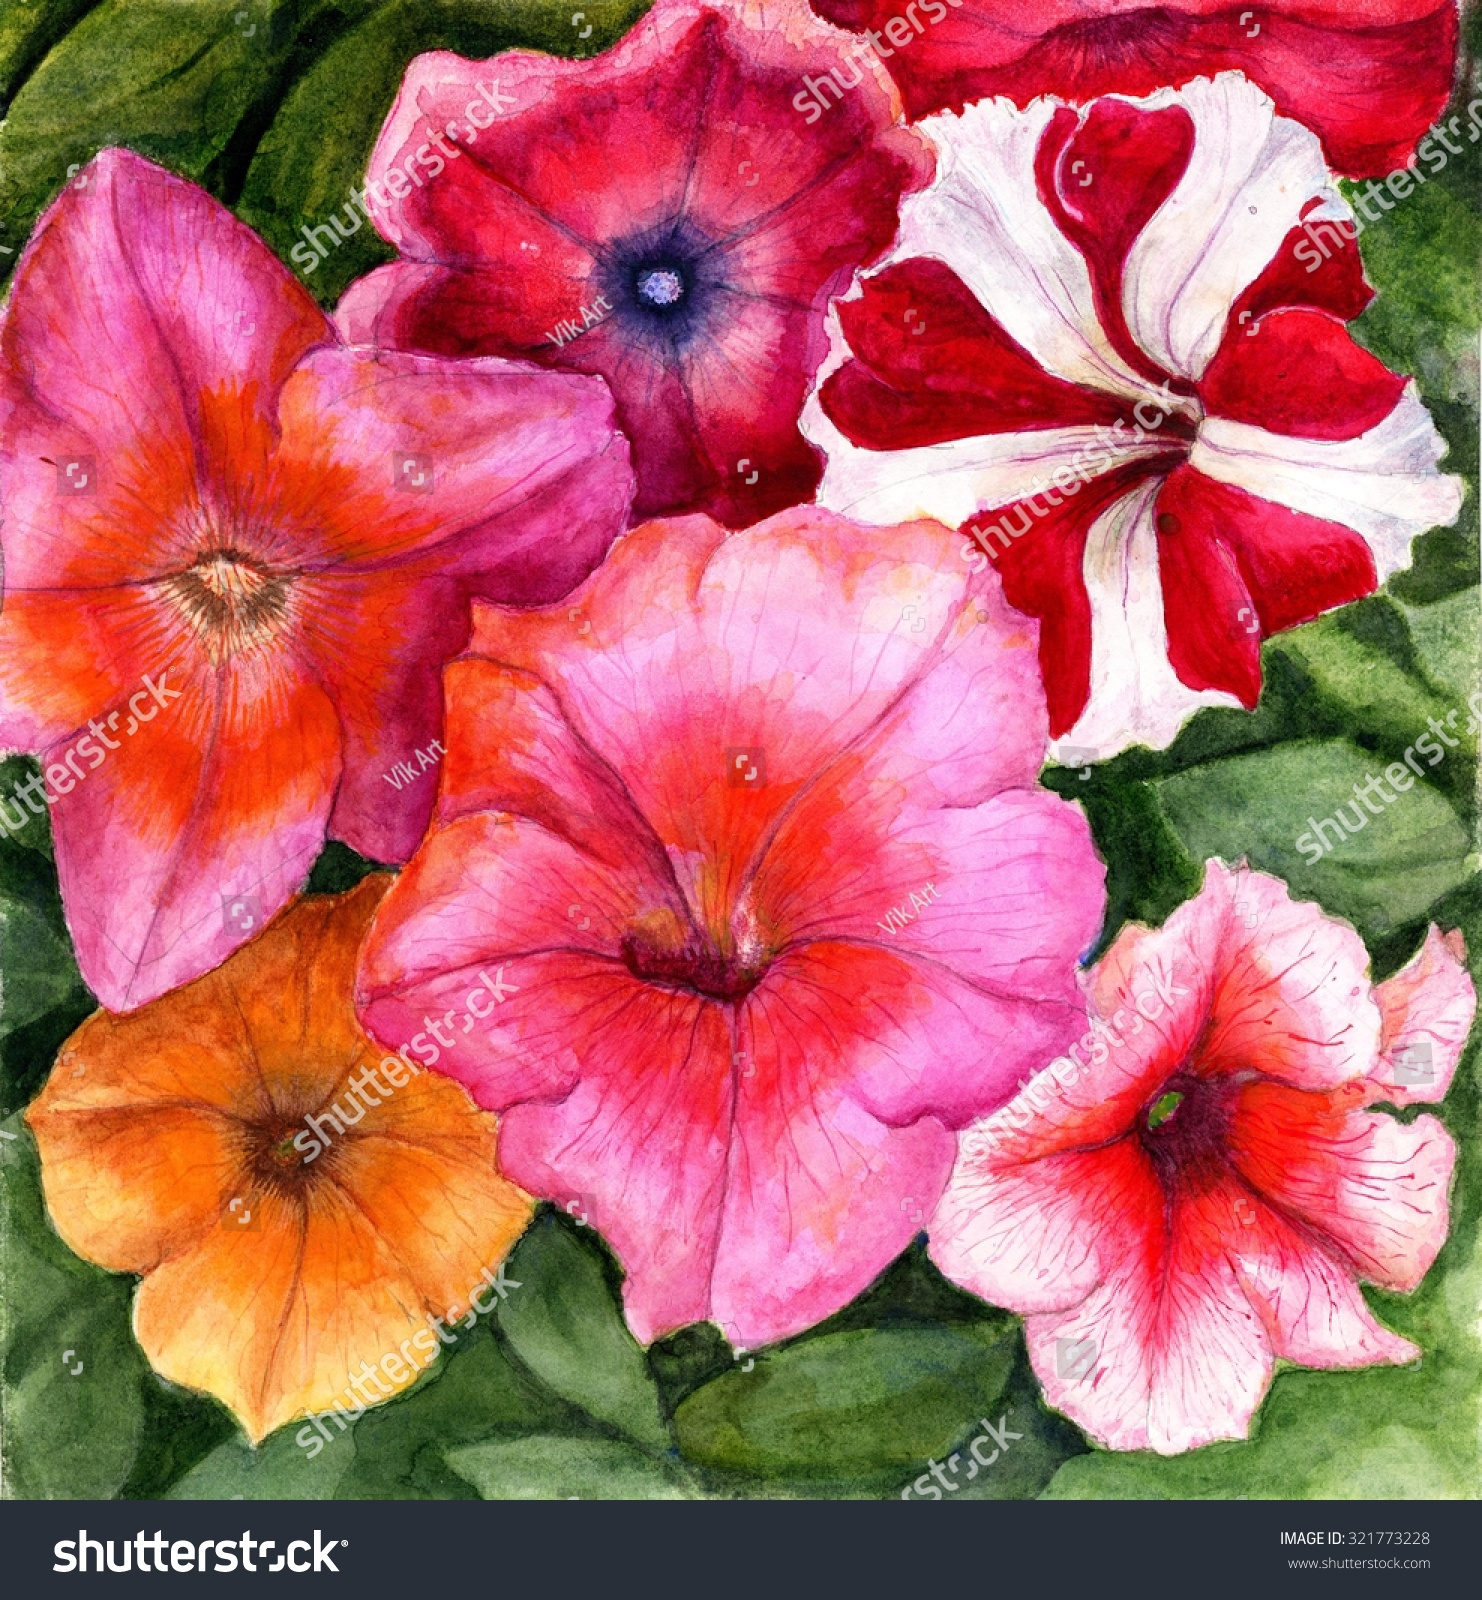 Watercolor painting beautiful flowers stock illustration 321773228 watercolor painting of the beautiful flowers izmirmasajfo Image collections